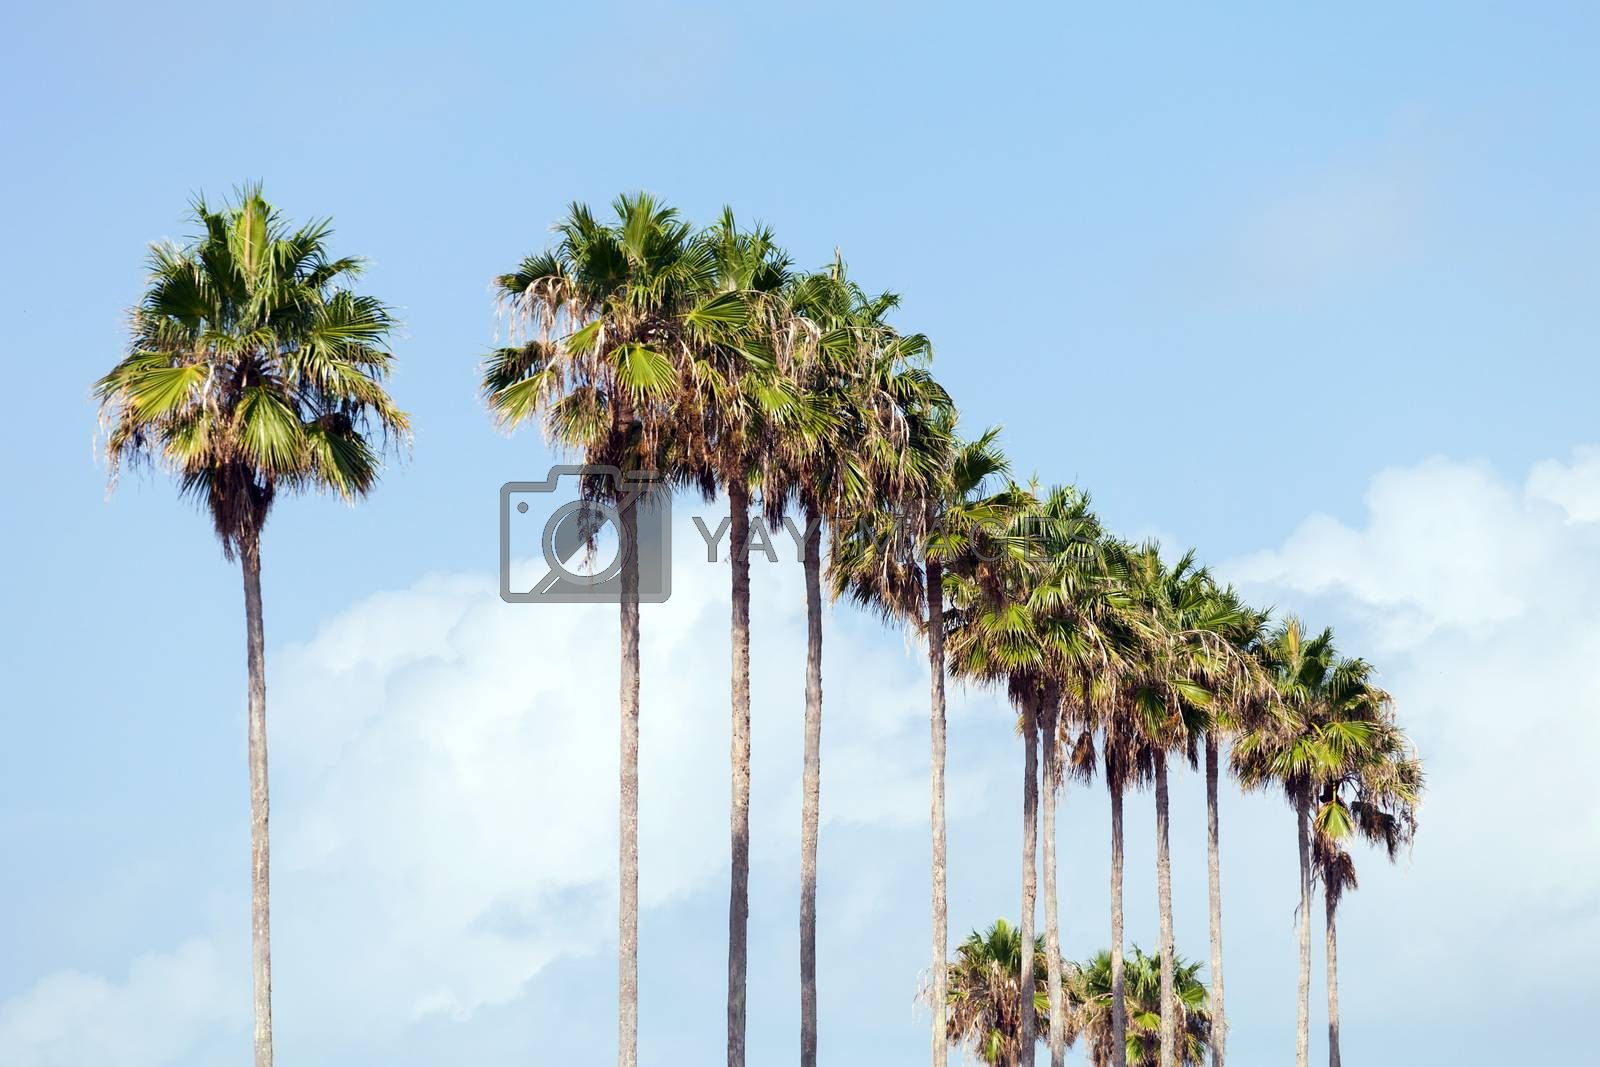 Royalty free image of Palm Trees in a Row by graficallyminded